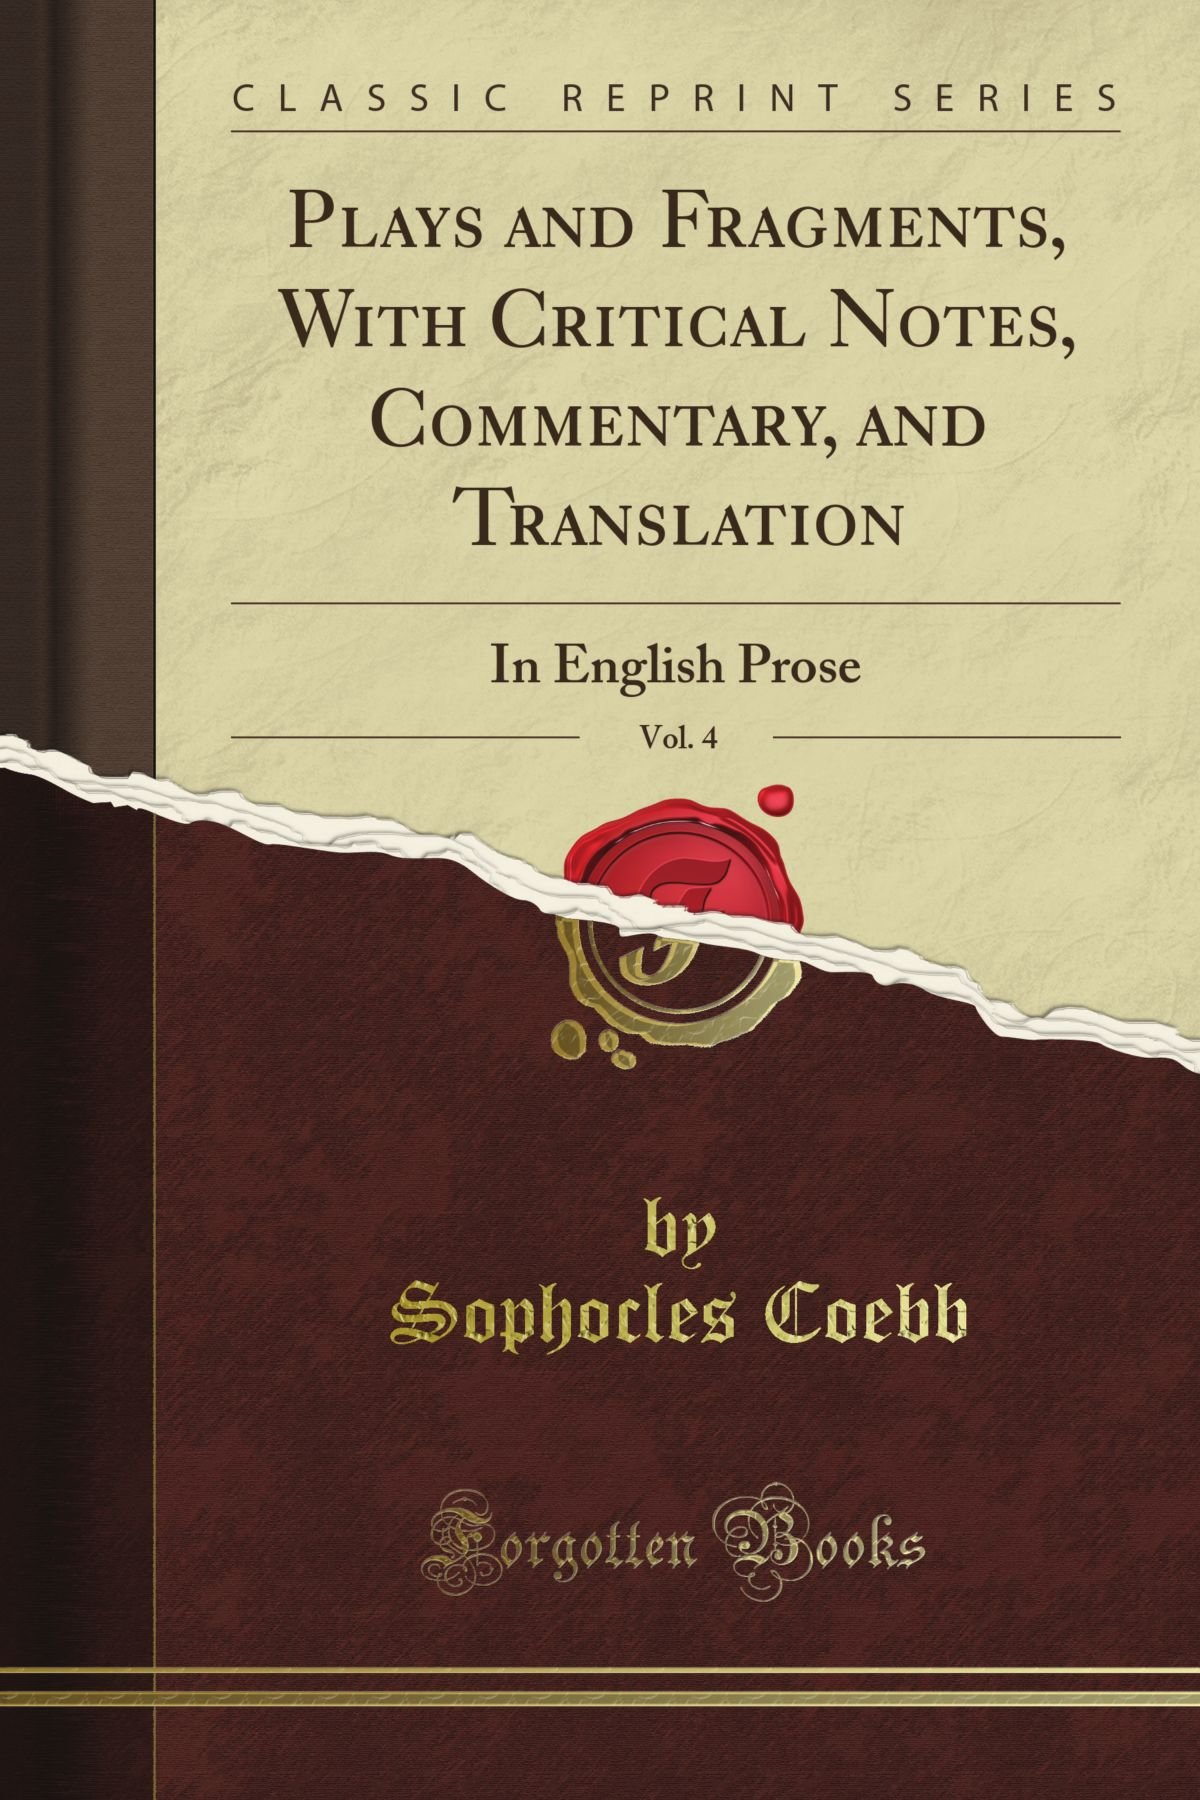 Plays and Fragments, With Critical Notes, Commentary, and Translation: In English Prose, Vol. 4 Classic Reprint: Amazon.es: Sophocles Coebb: Libros en ...